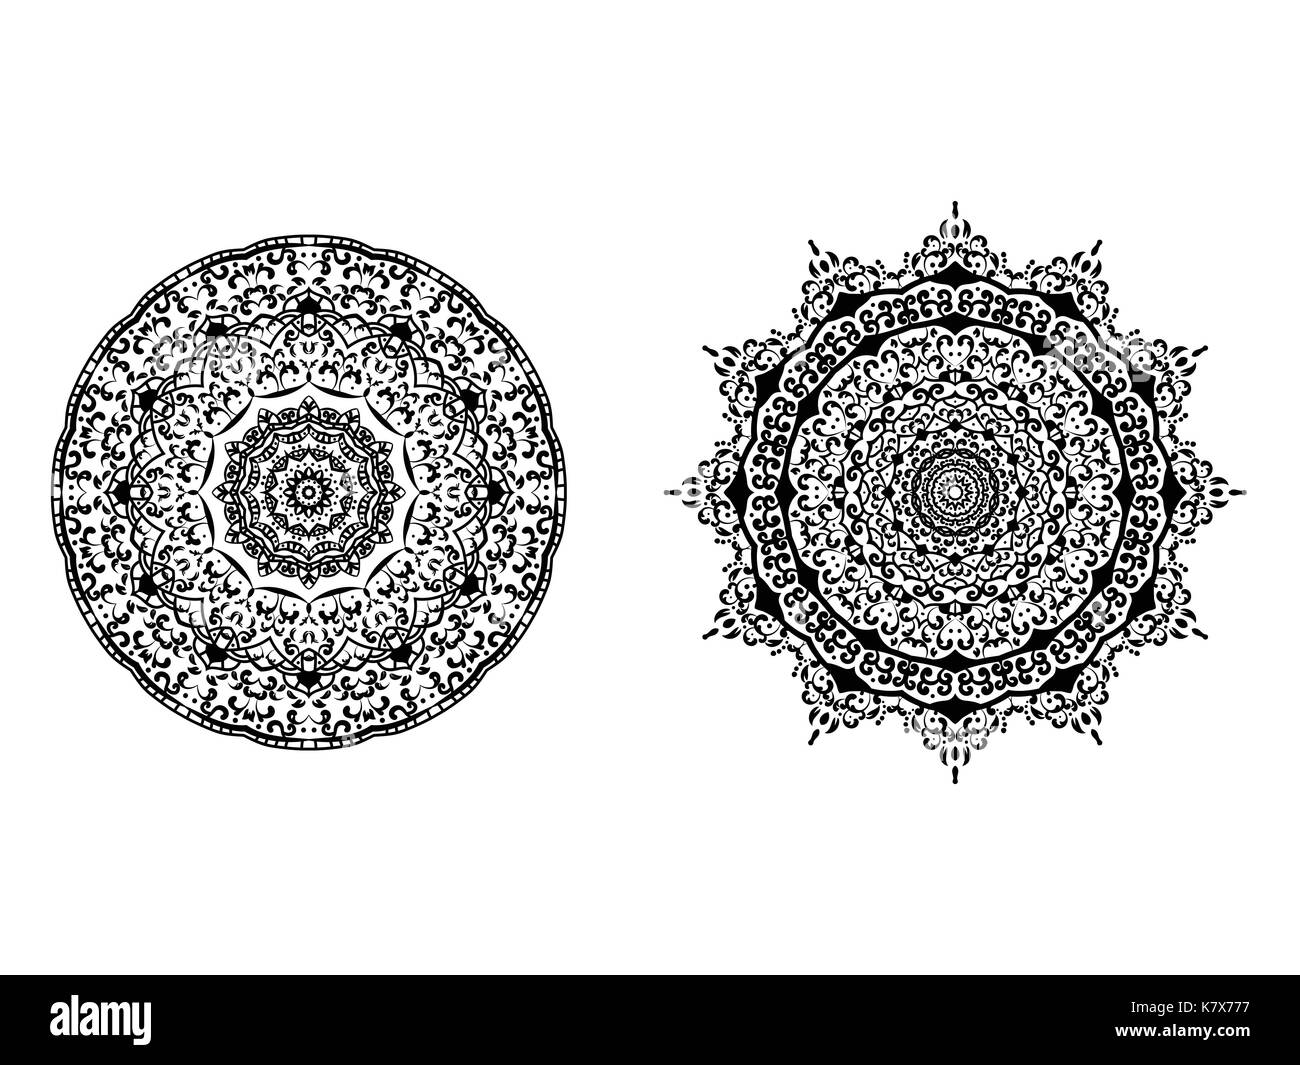 Abstrakte Kreis Mandala dekoratives Element Hintergrund Vector ...